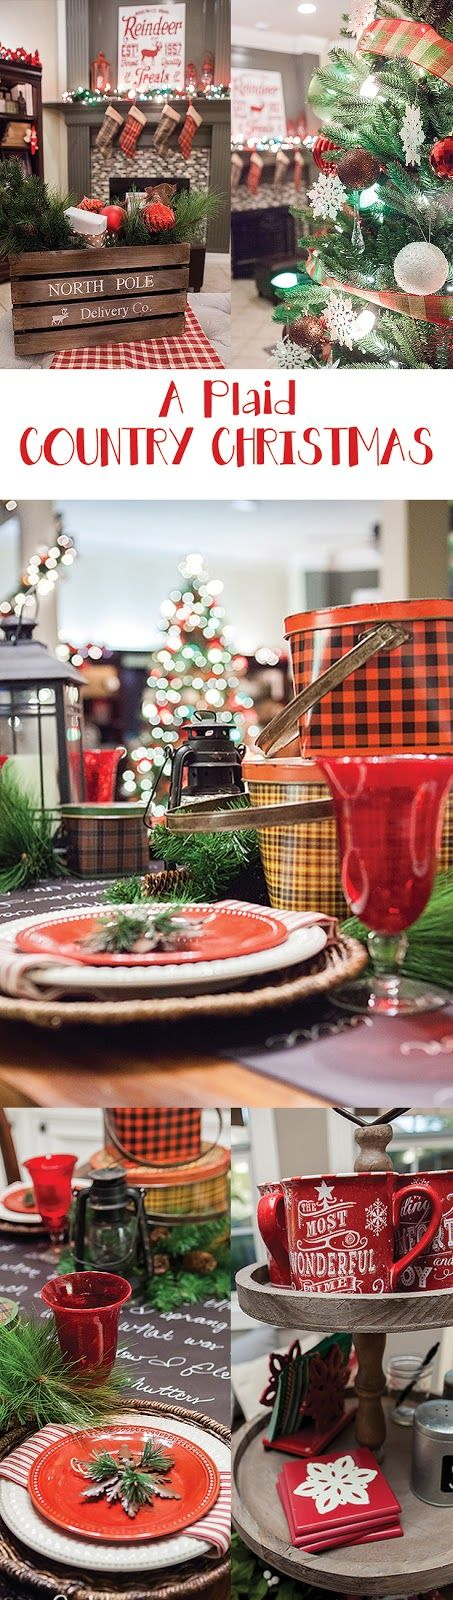 A truly stunning Christmas Home Tour as part of the Christmas in the Country Blog Tour. This Plaid Inspired Country Christmas will knock your socks off. Features tours of the Living room, Dining Room and a Cocoa hot chocolate bar in the Breakfast room. There is so much inspiration for Christmas decorations in this one post. Be prepared to feel like you are cuddled up by the fire in a warm Northwoods comfy cottage! #country #Christmas #Plaid #Holiday decorating #Holiday ideas #Holidays ...